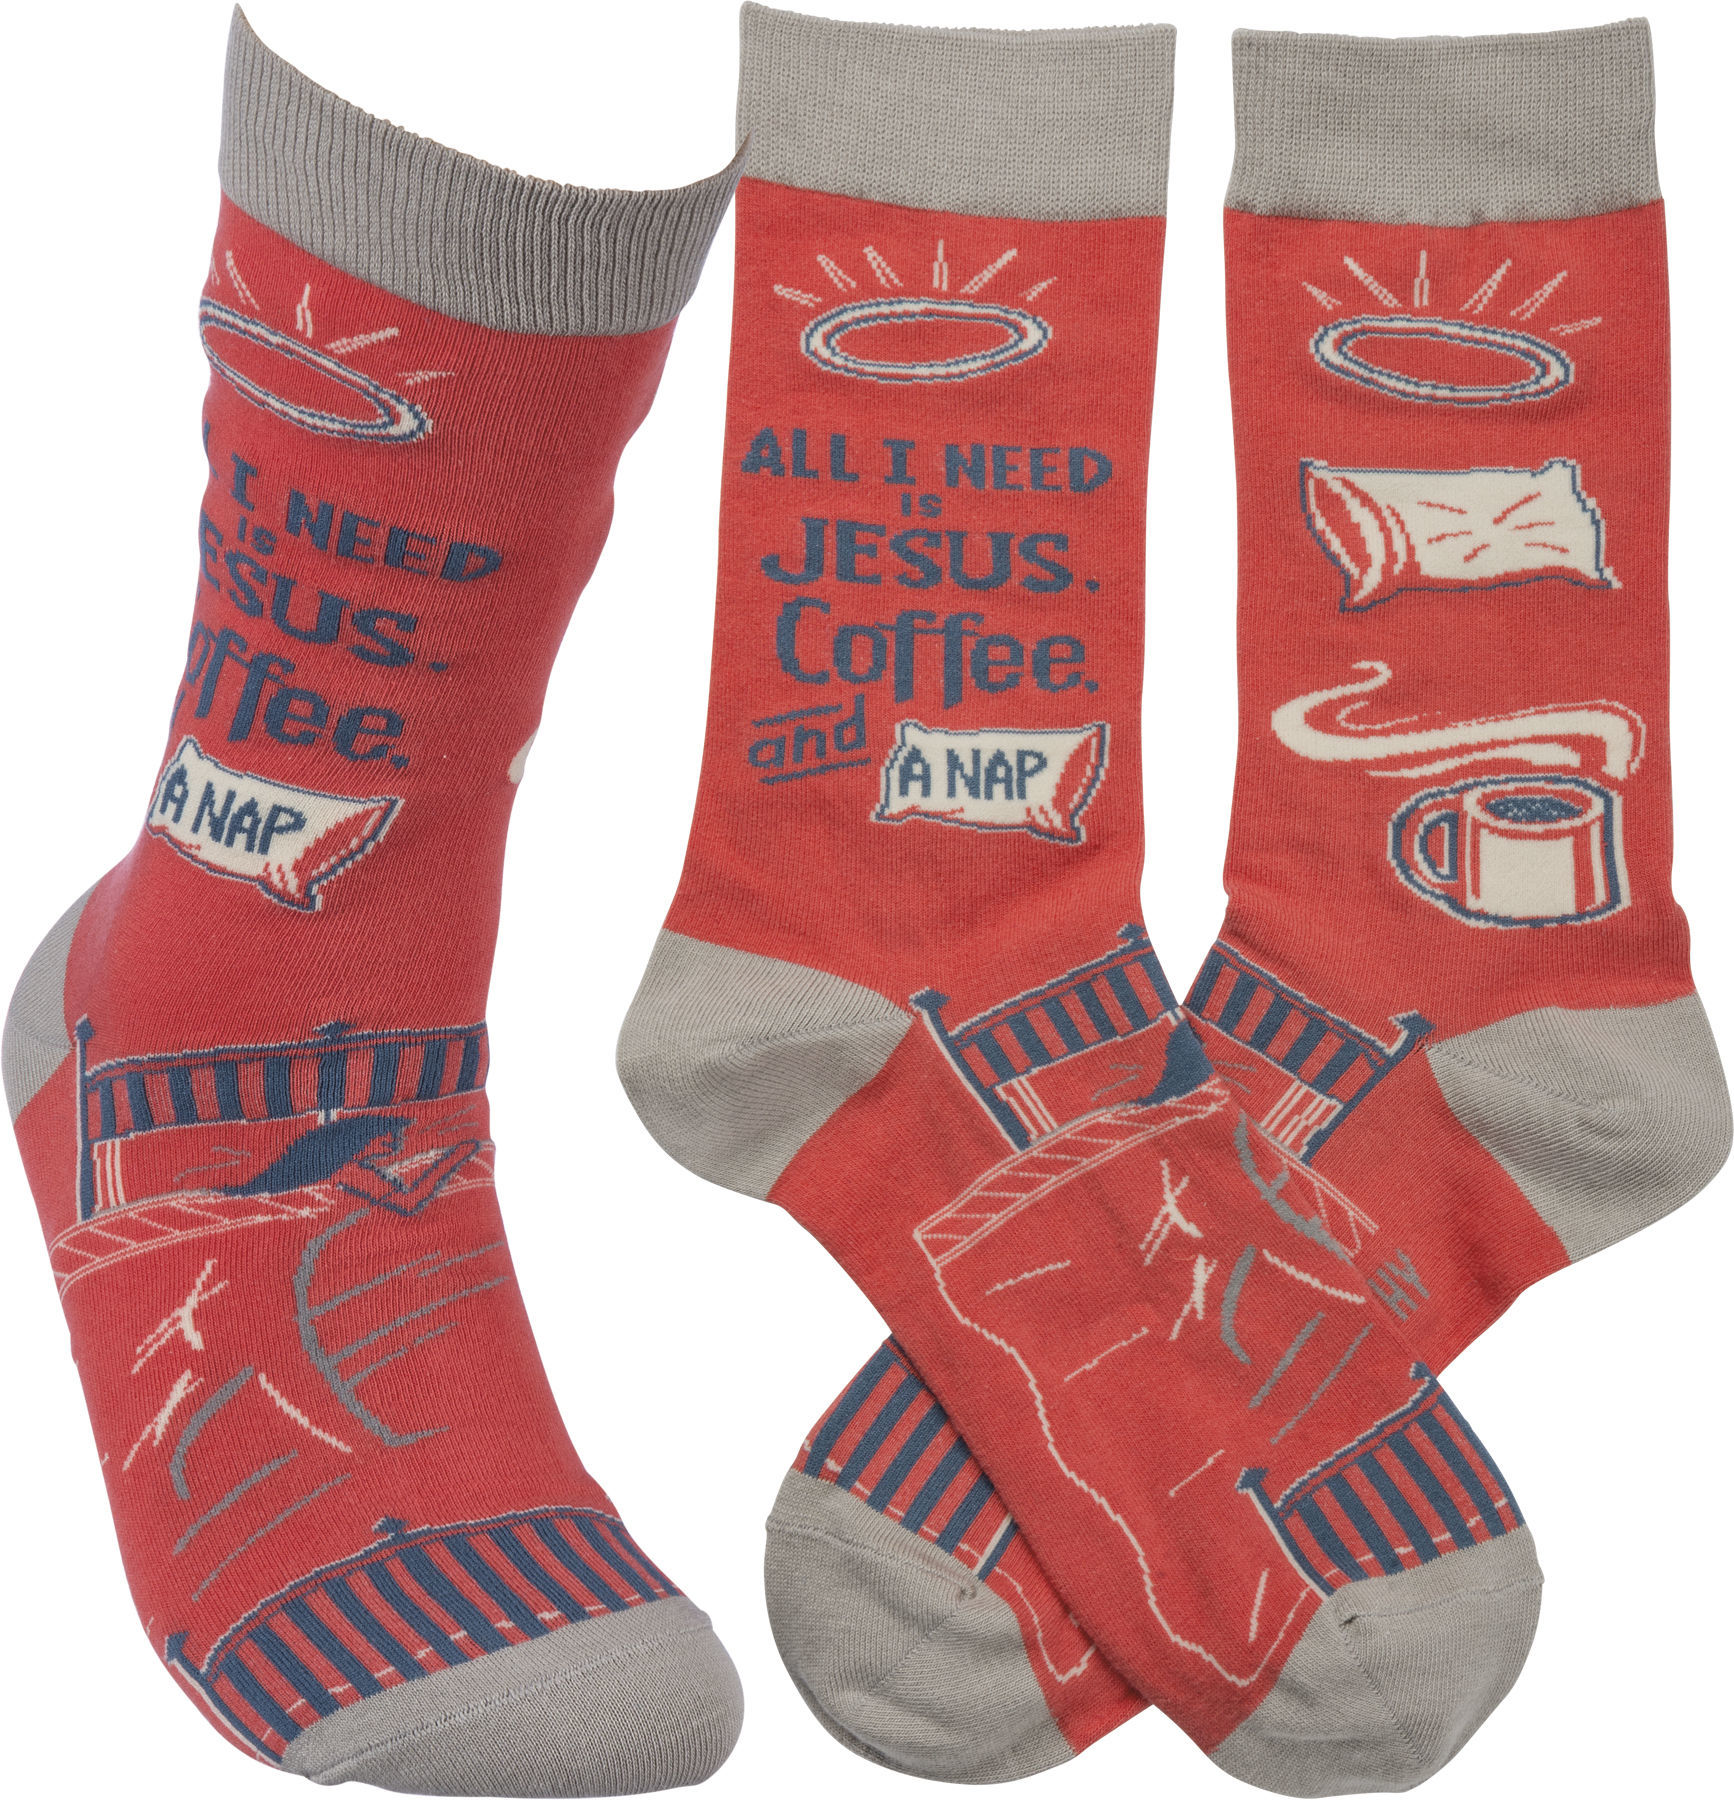 All I Need Is Jesus, Coffee, And Naps Socks by Primitives by Kathy